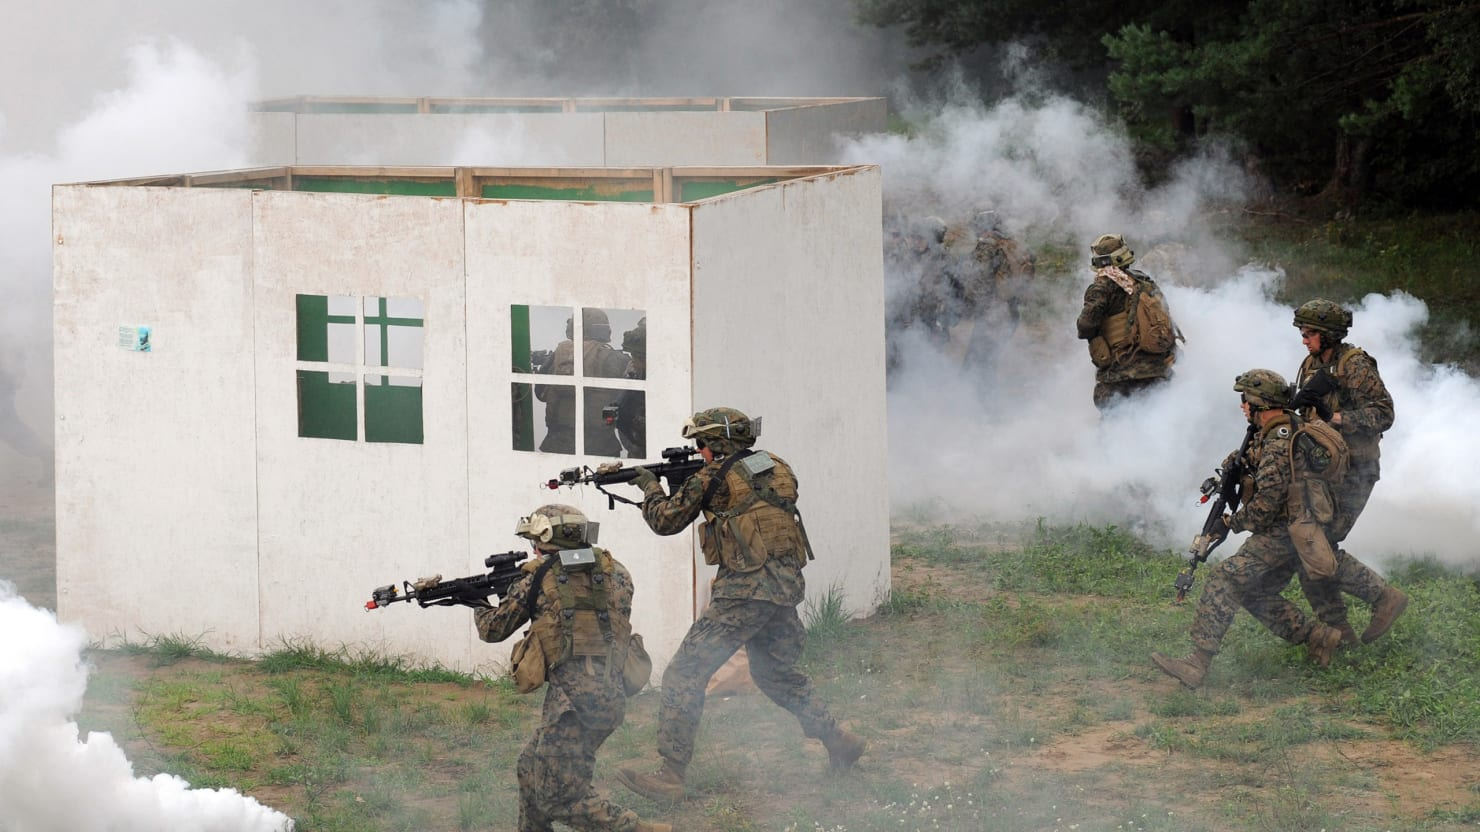 American Paratroopers in Ukraine Have Putin Rattled